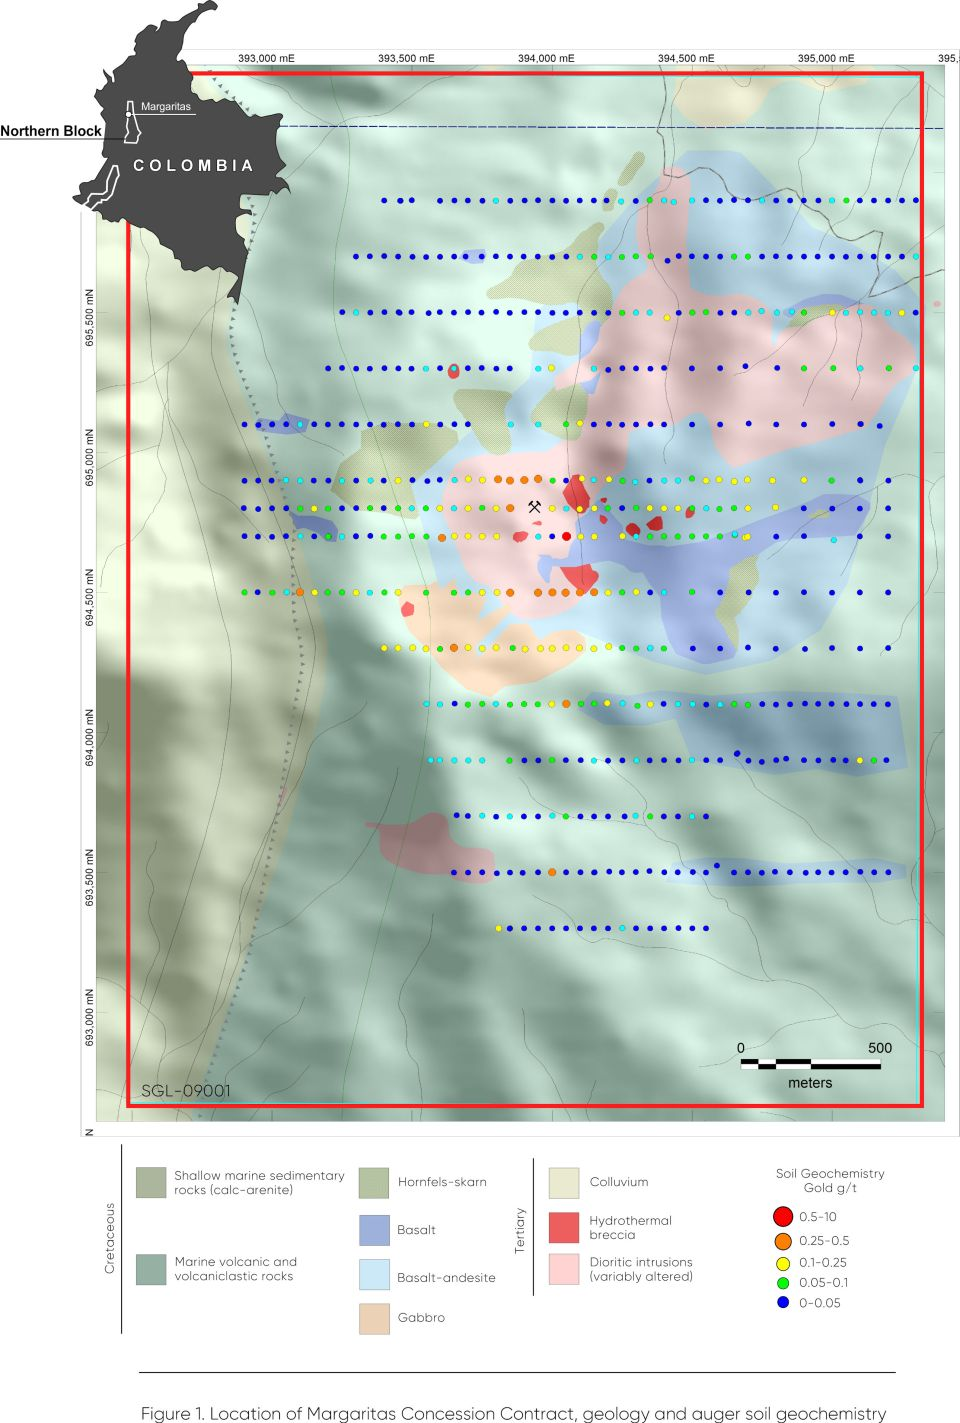 Royal Road has conducted grid-based surface geochemical sampling and further geological mapping at Margaritas